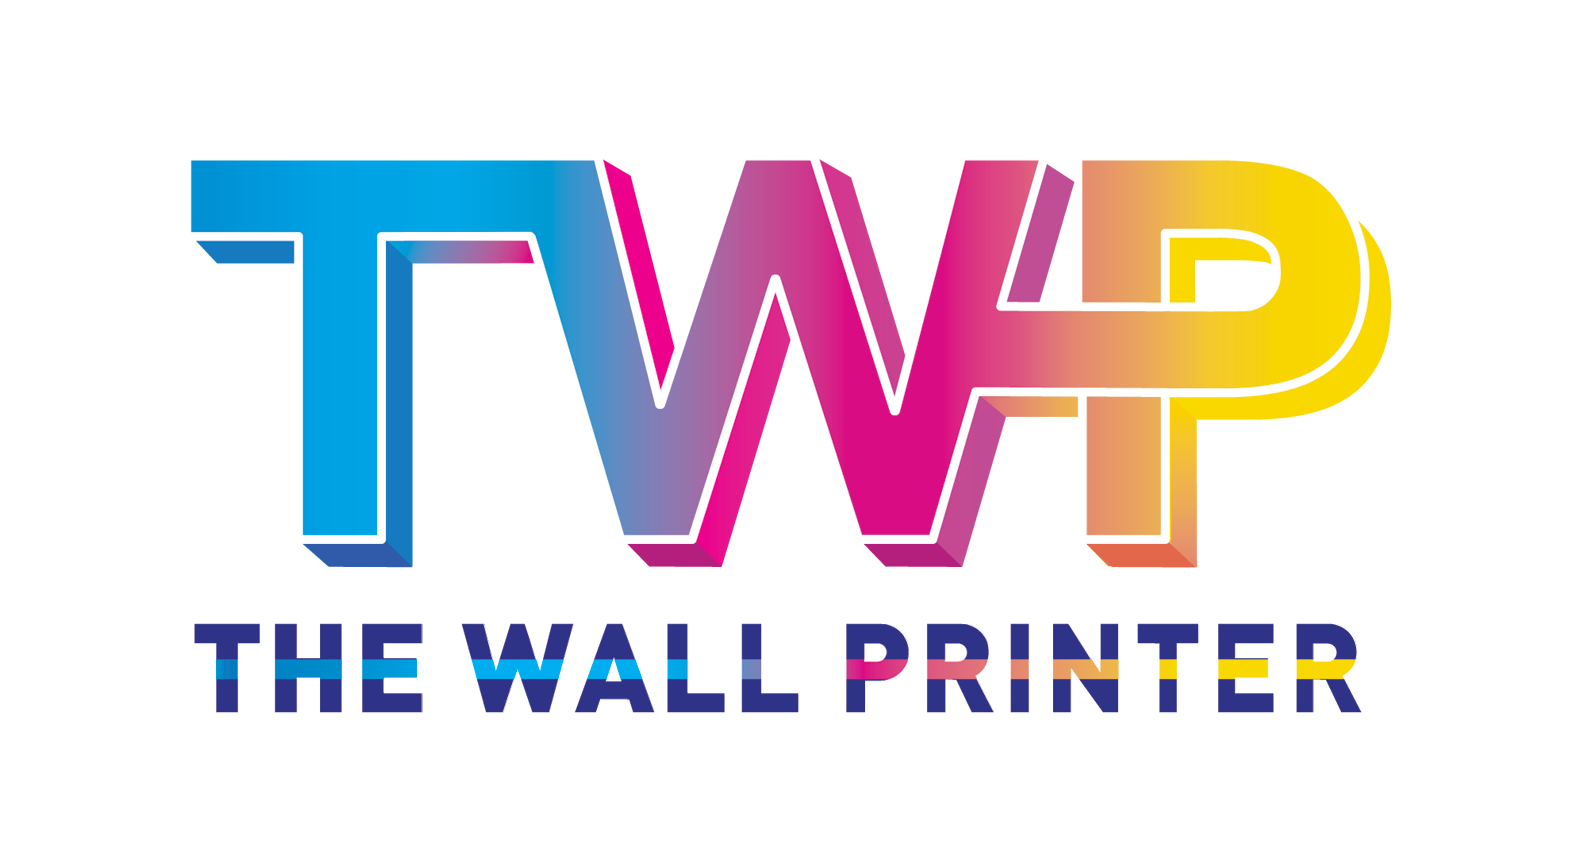 The Wall Printer